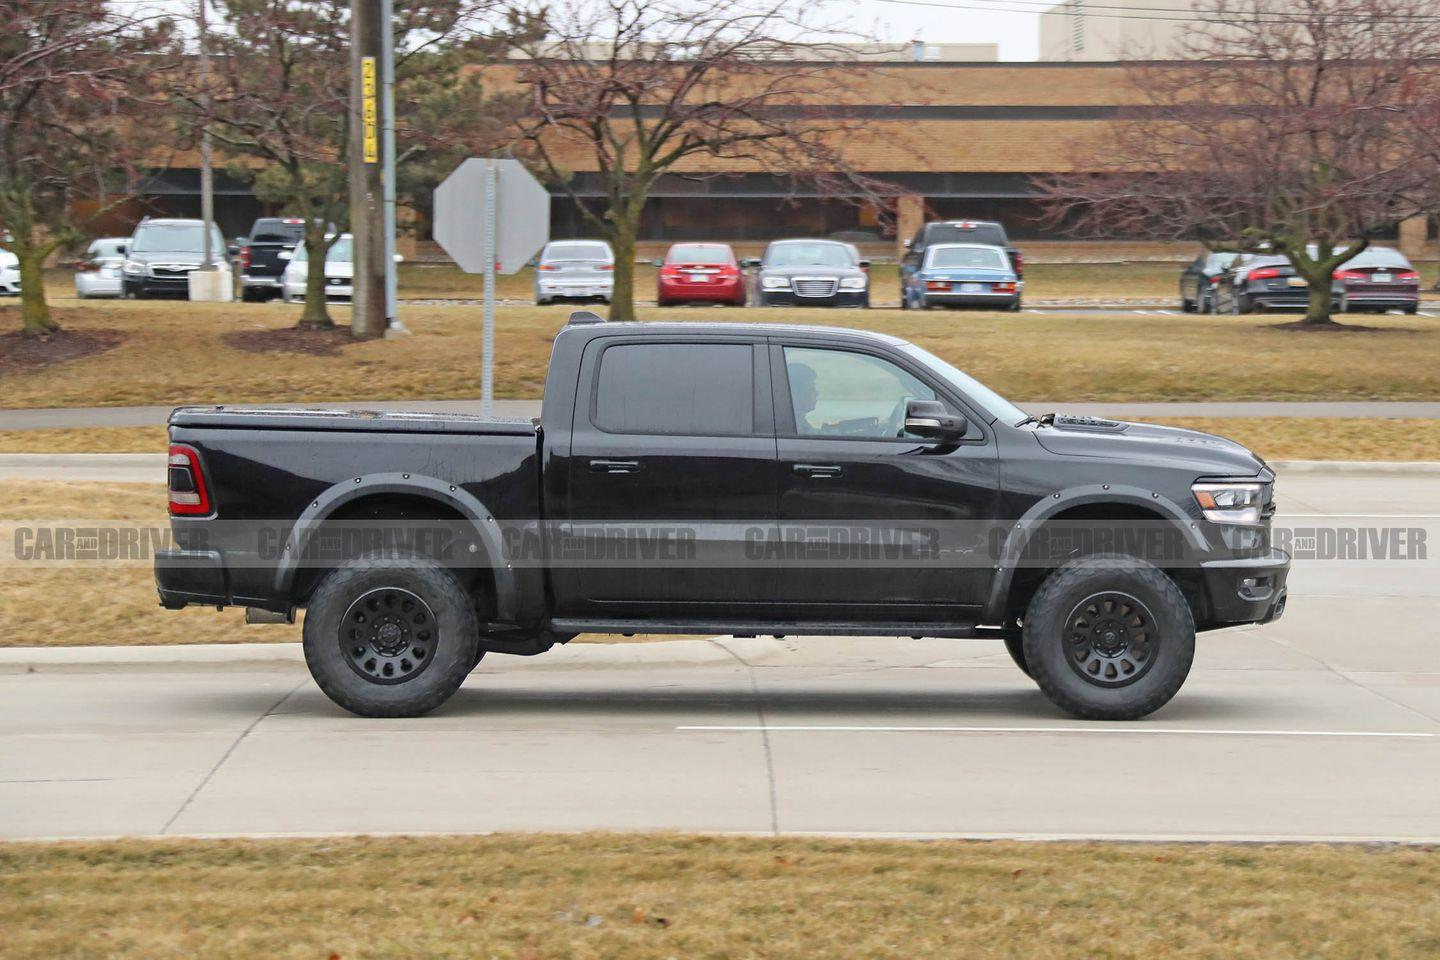 """<p>Its status as future production mode was hinted at during <a href=""""https://www.caranddriver.com/news/a21050011/the-ram-trx-high-performance-truck-is-happening-for-real/"""" rel=""""nofollow noopener"""" target=""""_blank"""" data-ylk=""""slk:FCA's 2018 five-year presentation plan"""" class=""""link rapid-noclick-resp"""">FCA's 2018 five-year presentation plan</a>, and reviewing the plan in detail filled in enough holes for us to consider the TRX a done deal.</p>"""